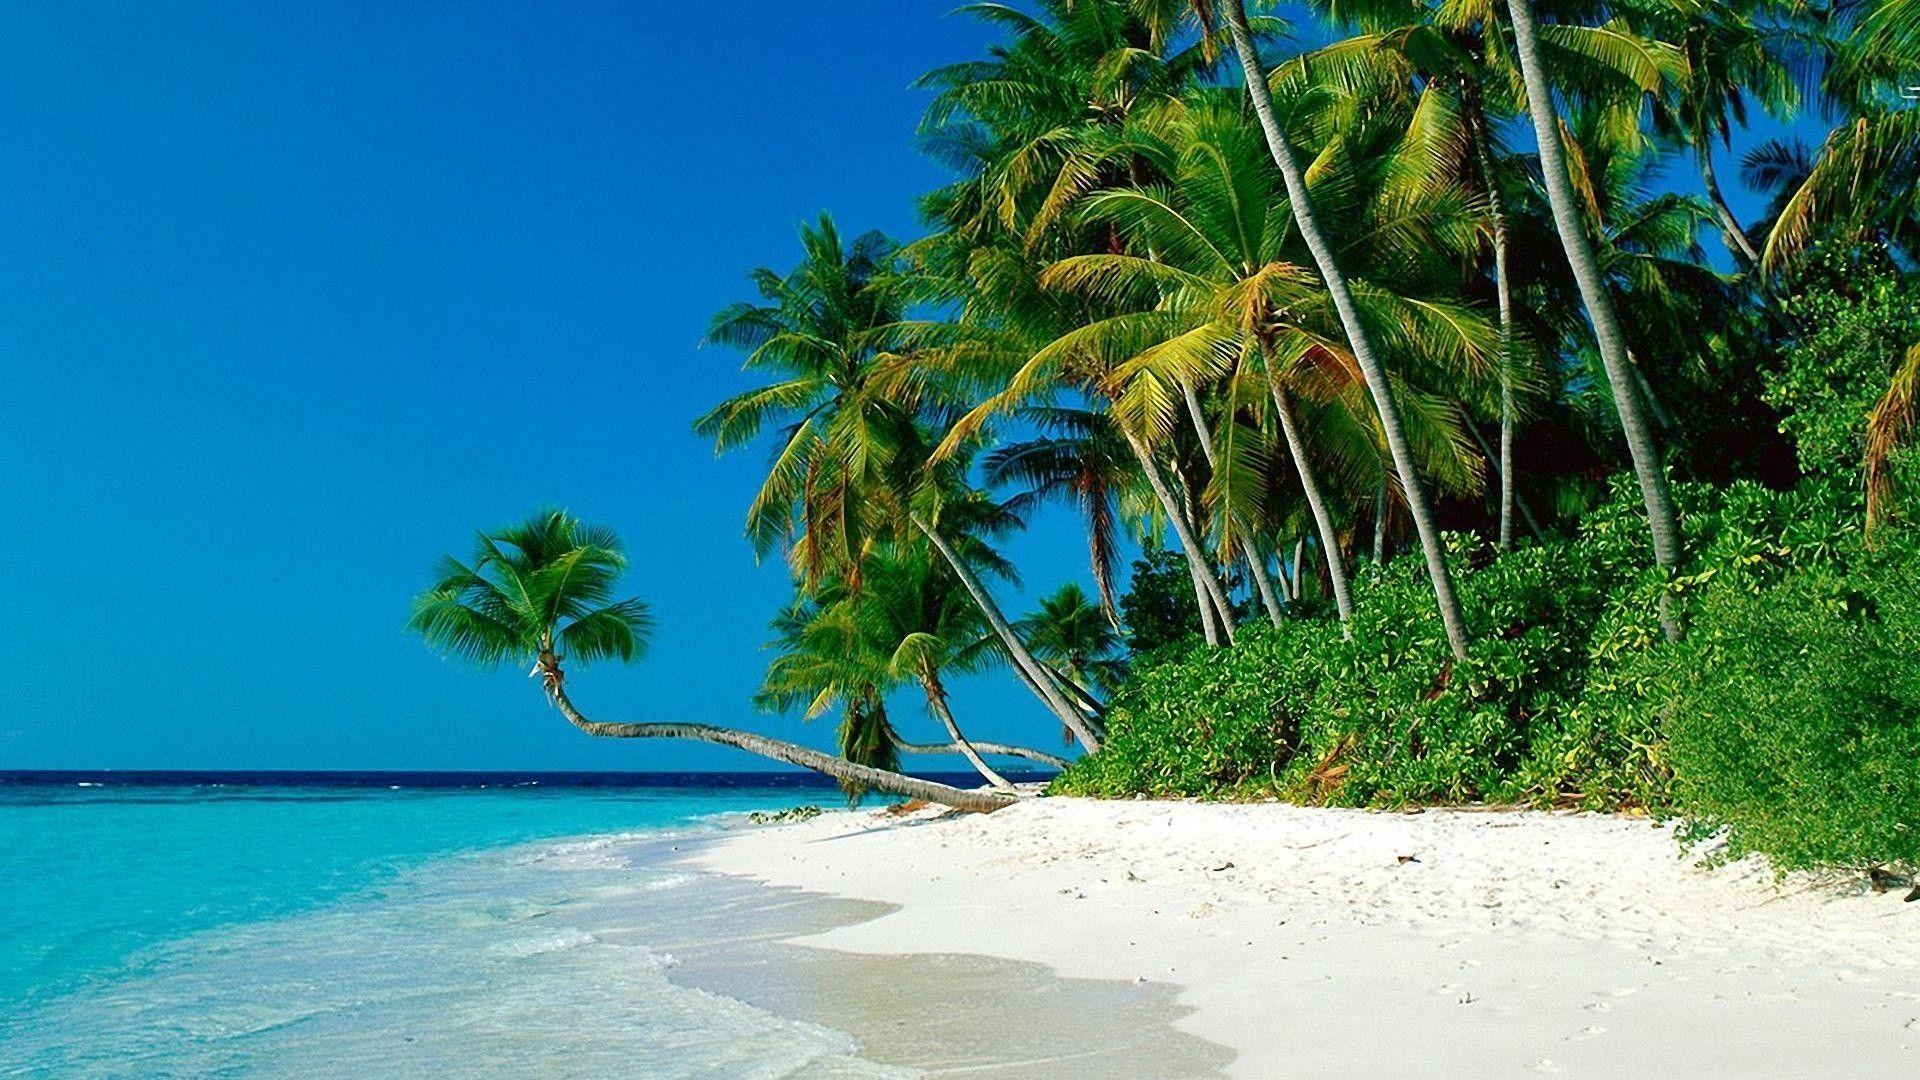 Tropical Beaches With Palm Trees Wallpapers Hd Pictures 4